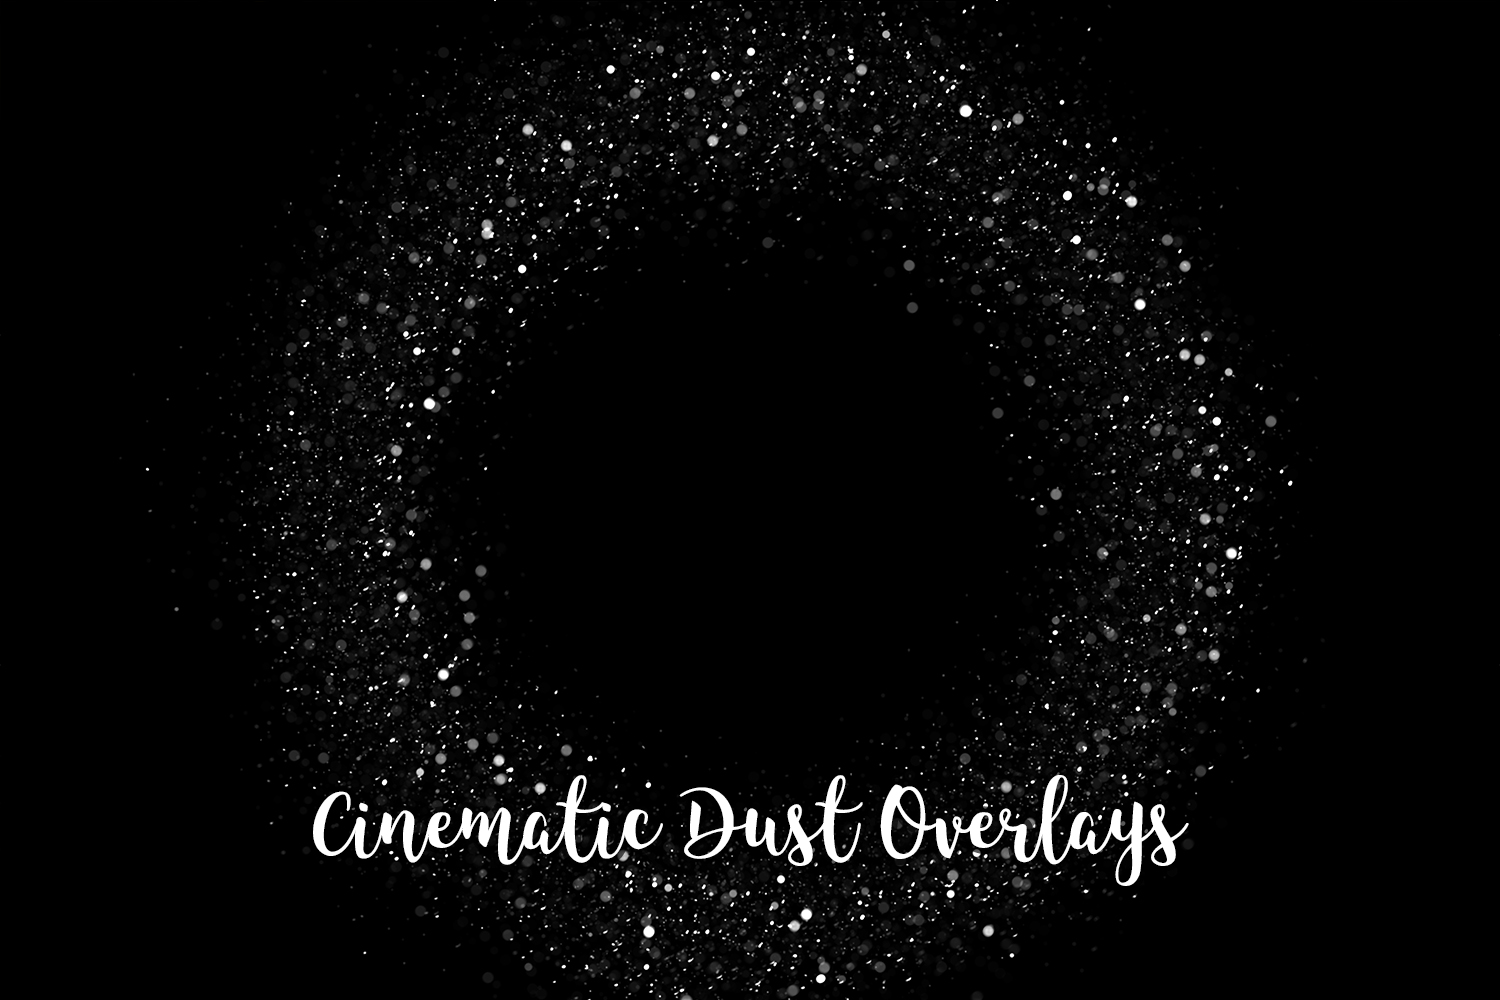 Cinematic Dust Photo Overlays, Bokeh Light Effects example image 9